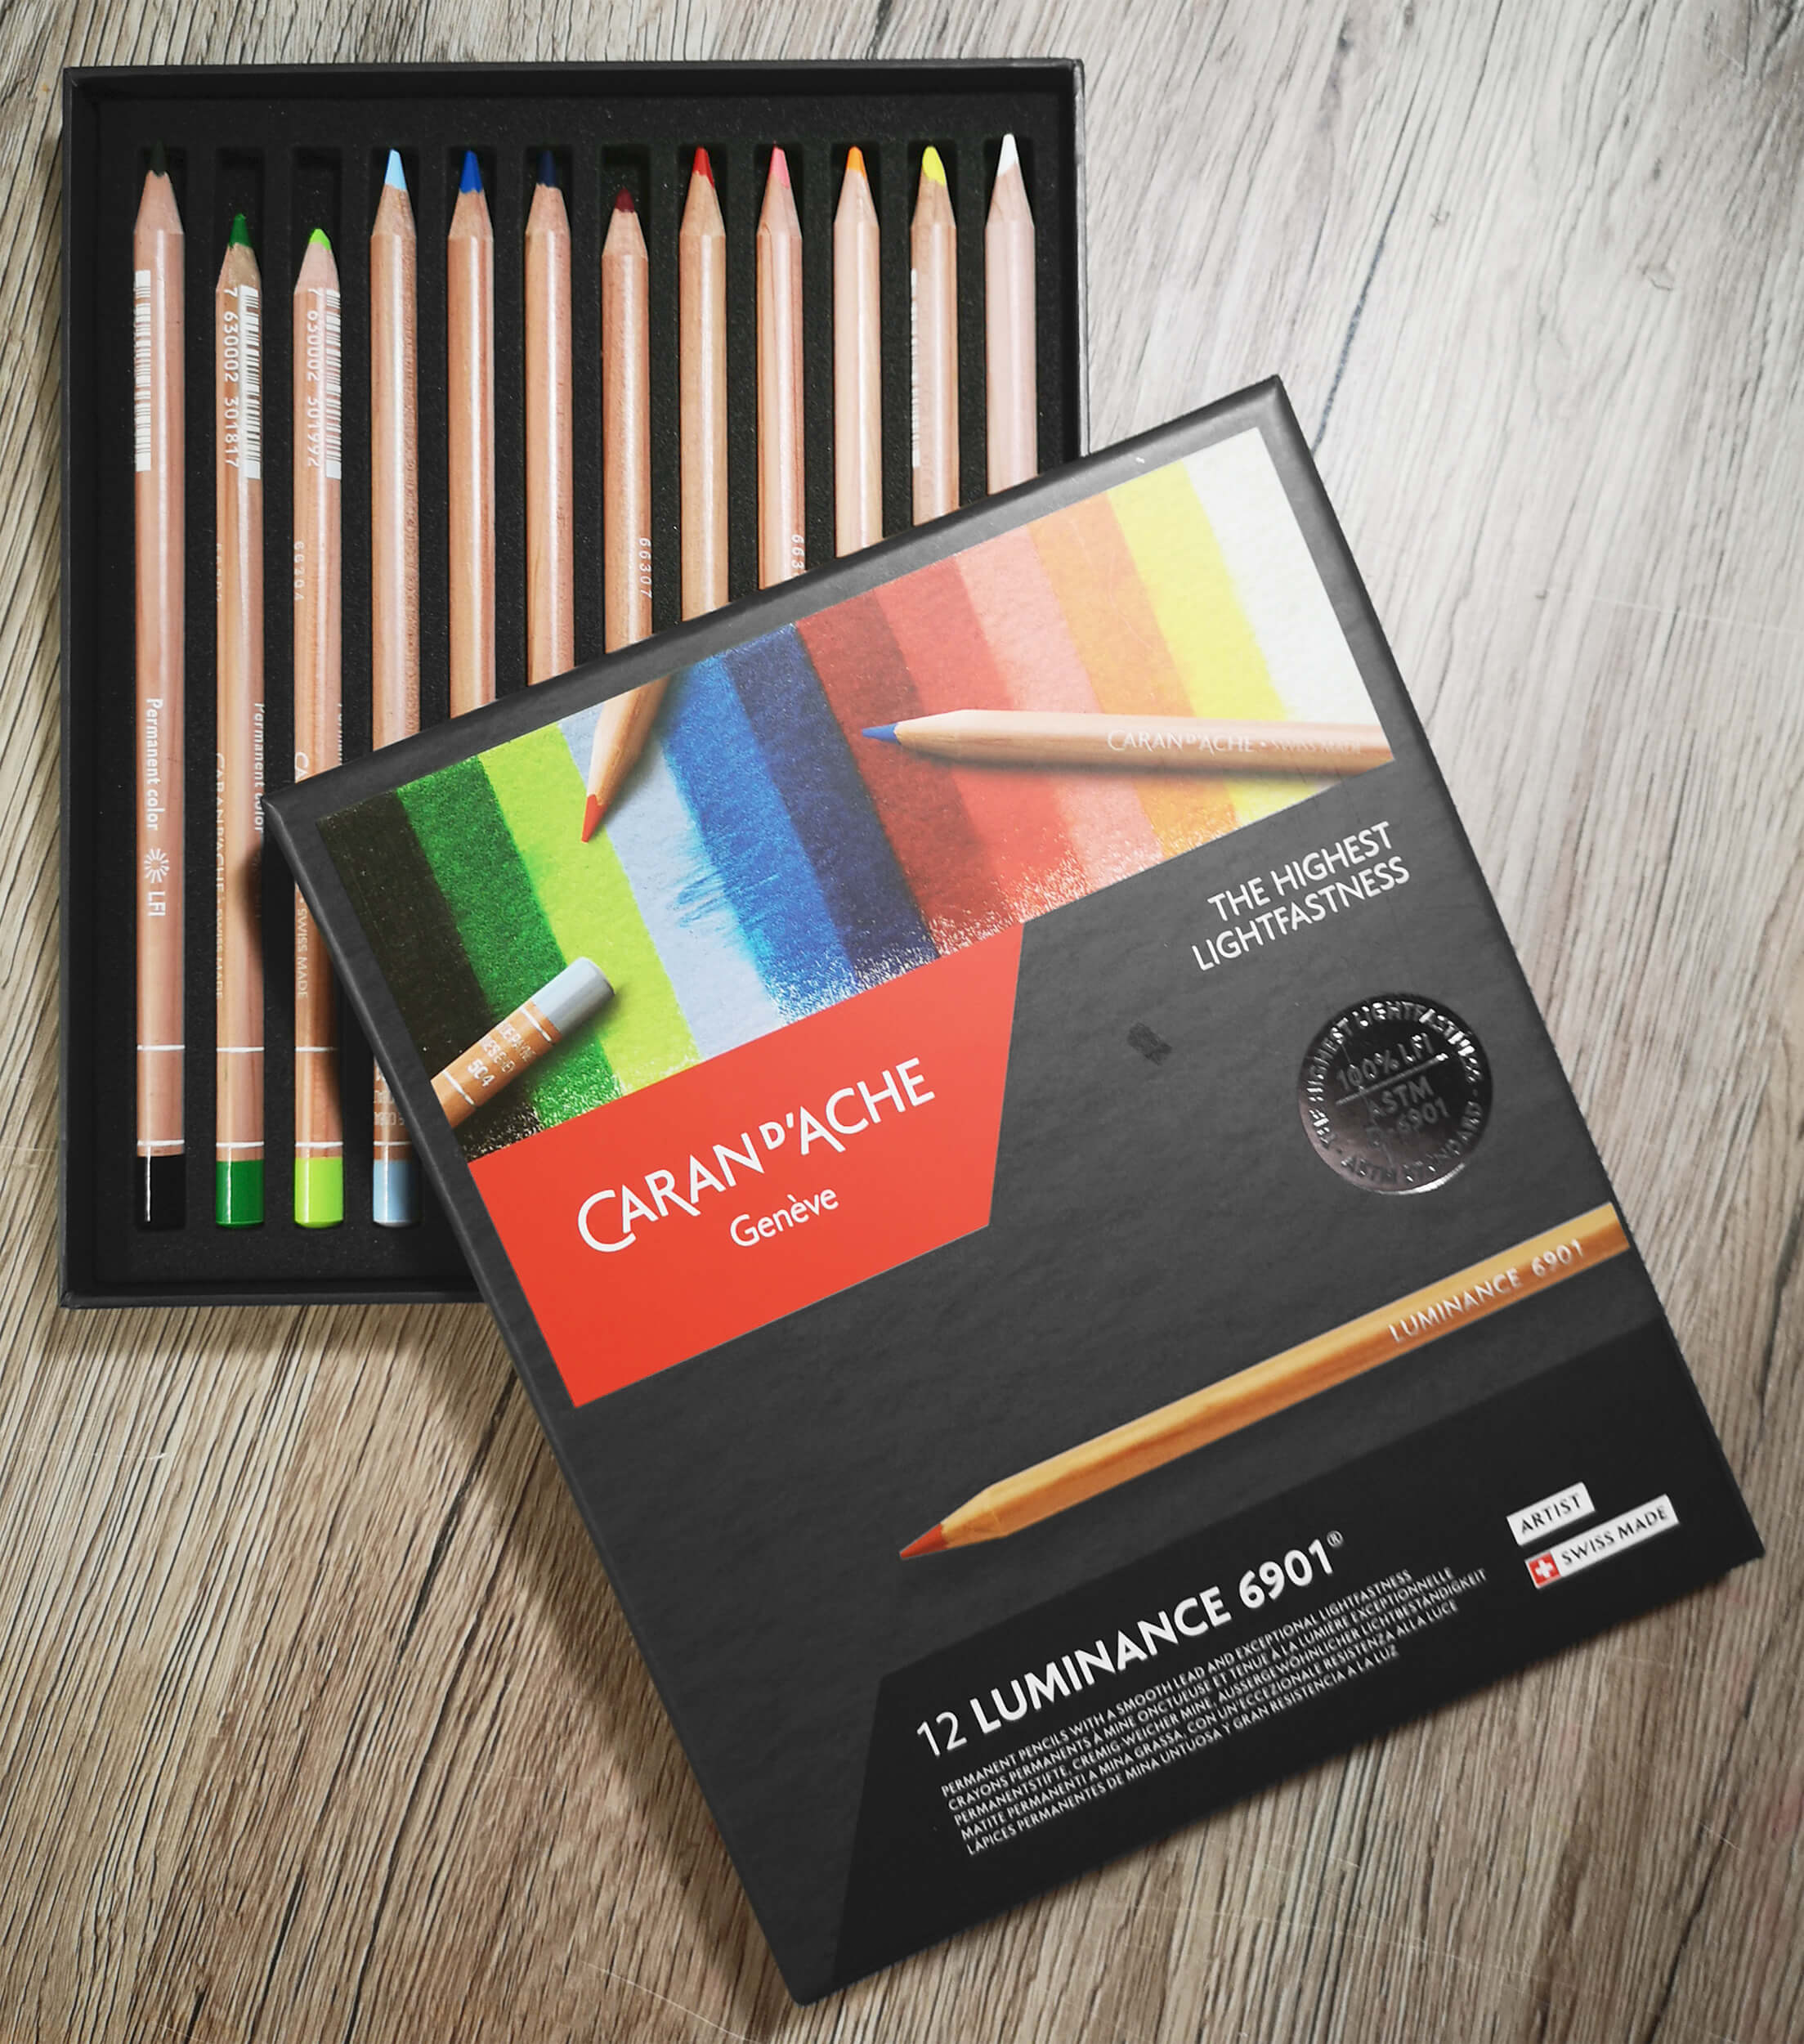 Review: Caran D'Ache Luminance Buntstifte